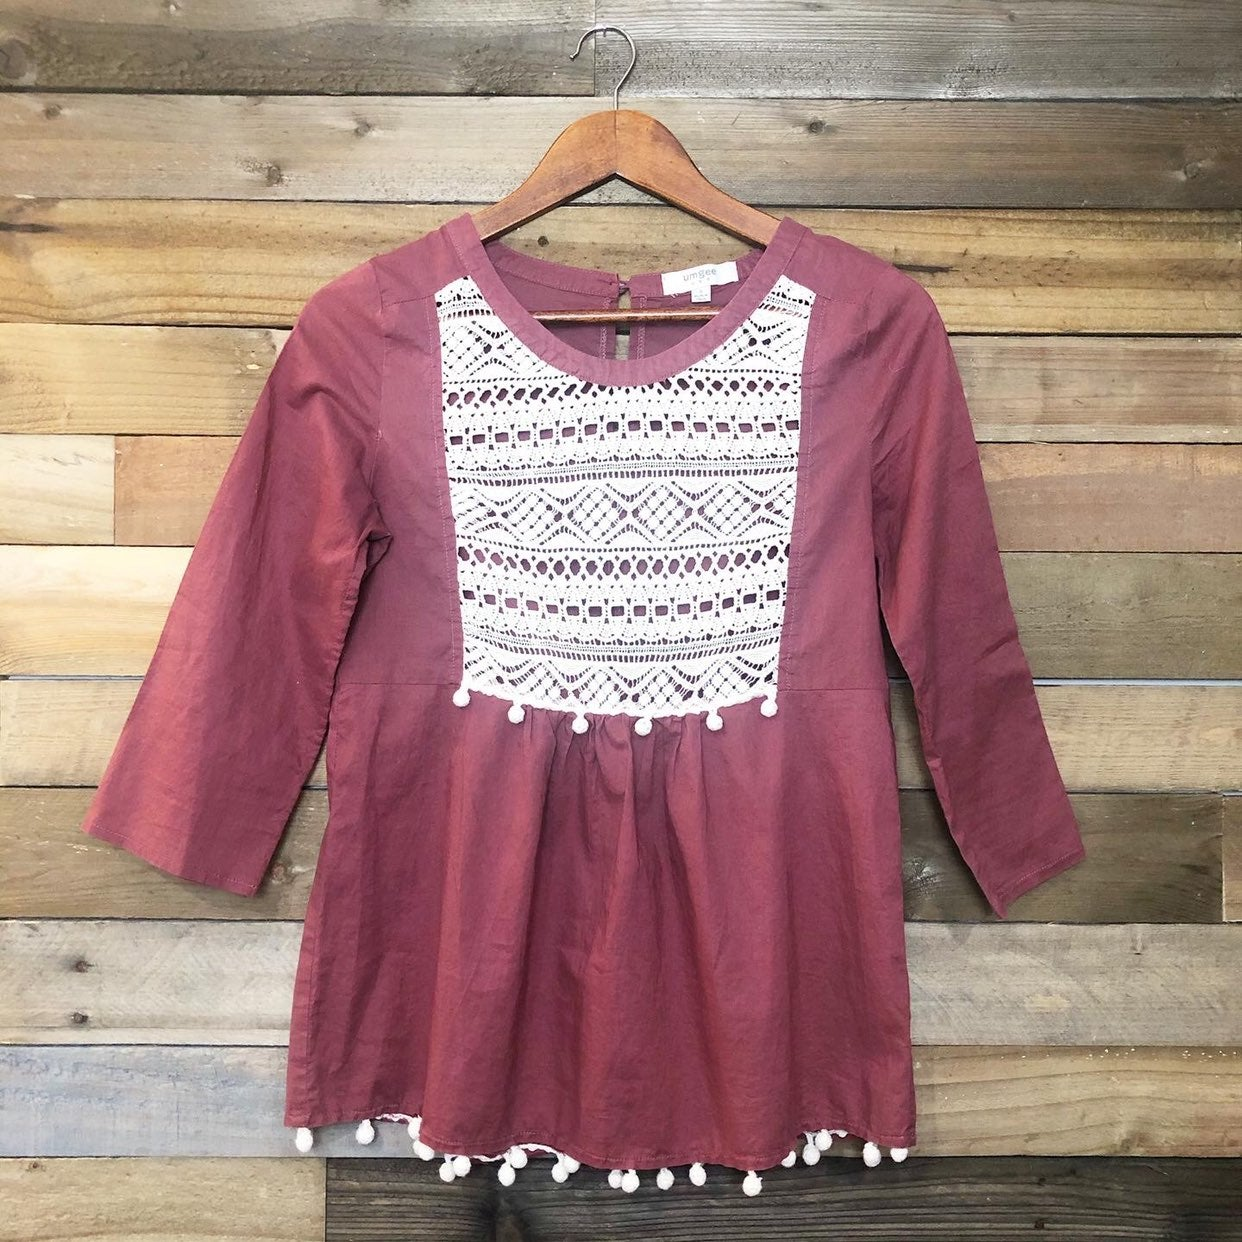 Umgee Rustic Red Crocheted PomPom Blouse